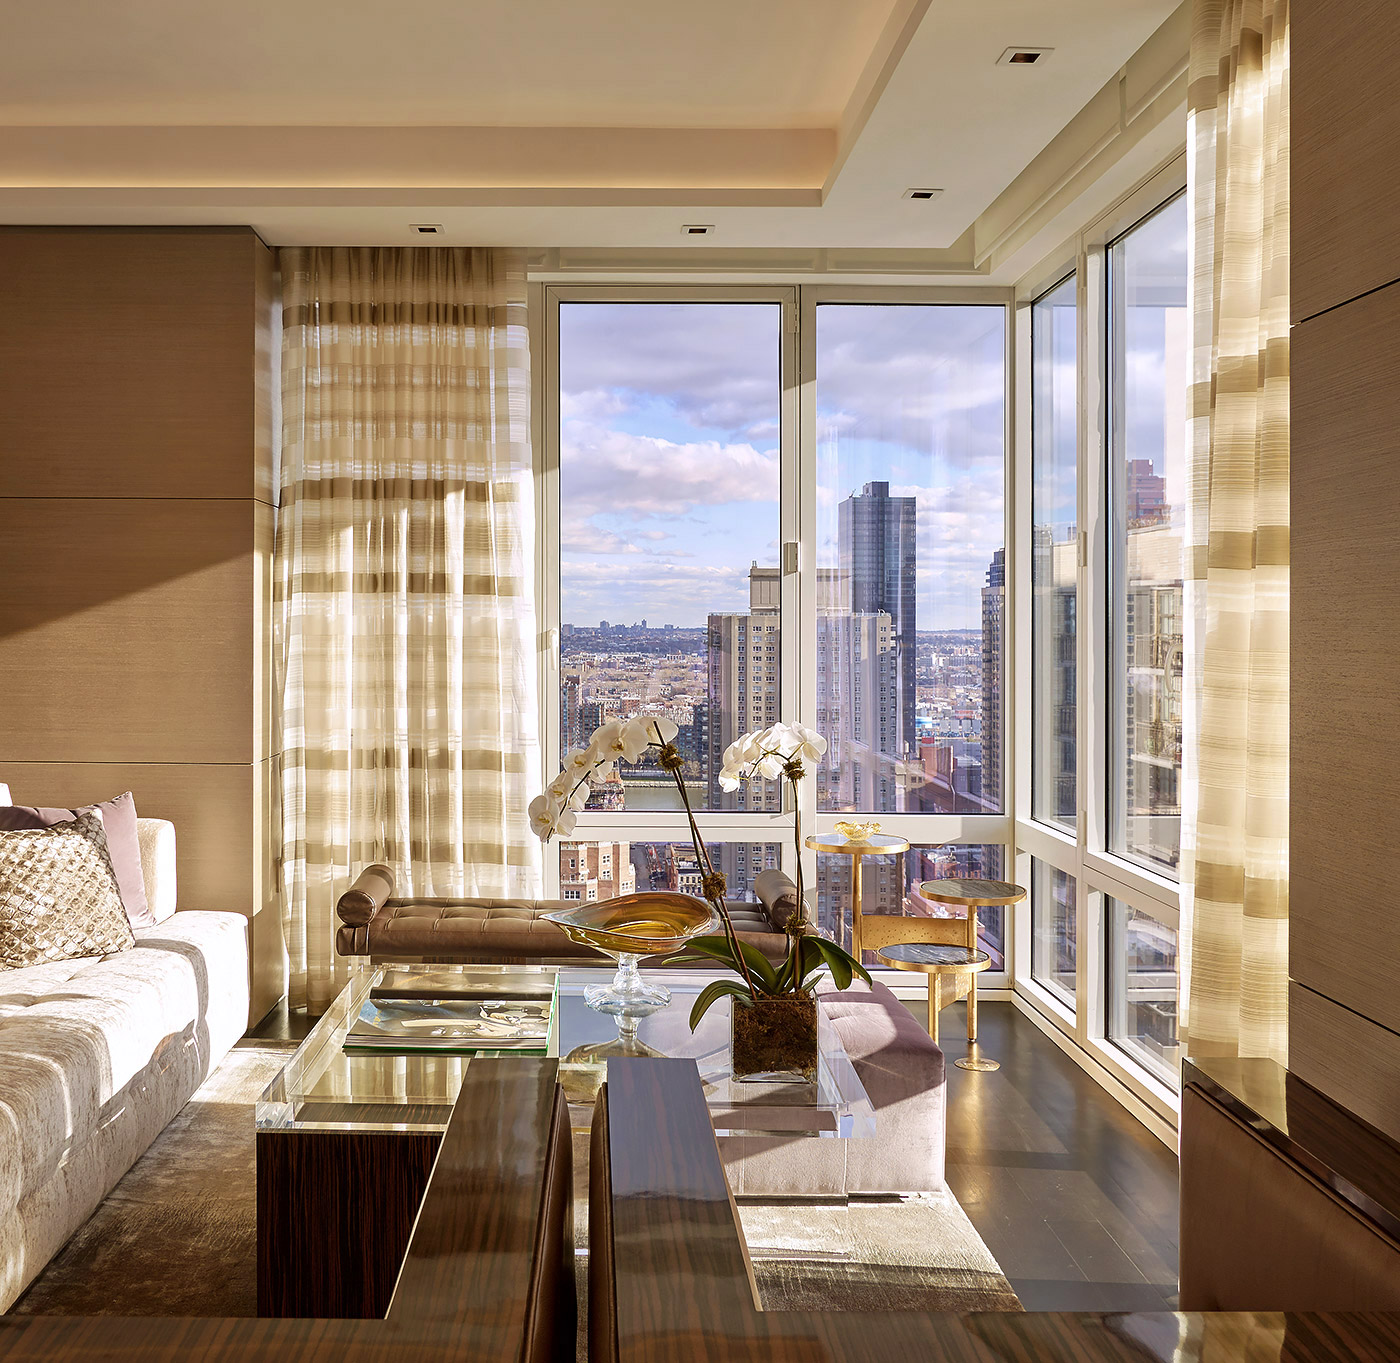 New-York-City-Interior-Living-Room-View-Photography